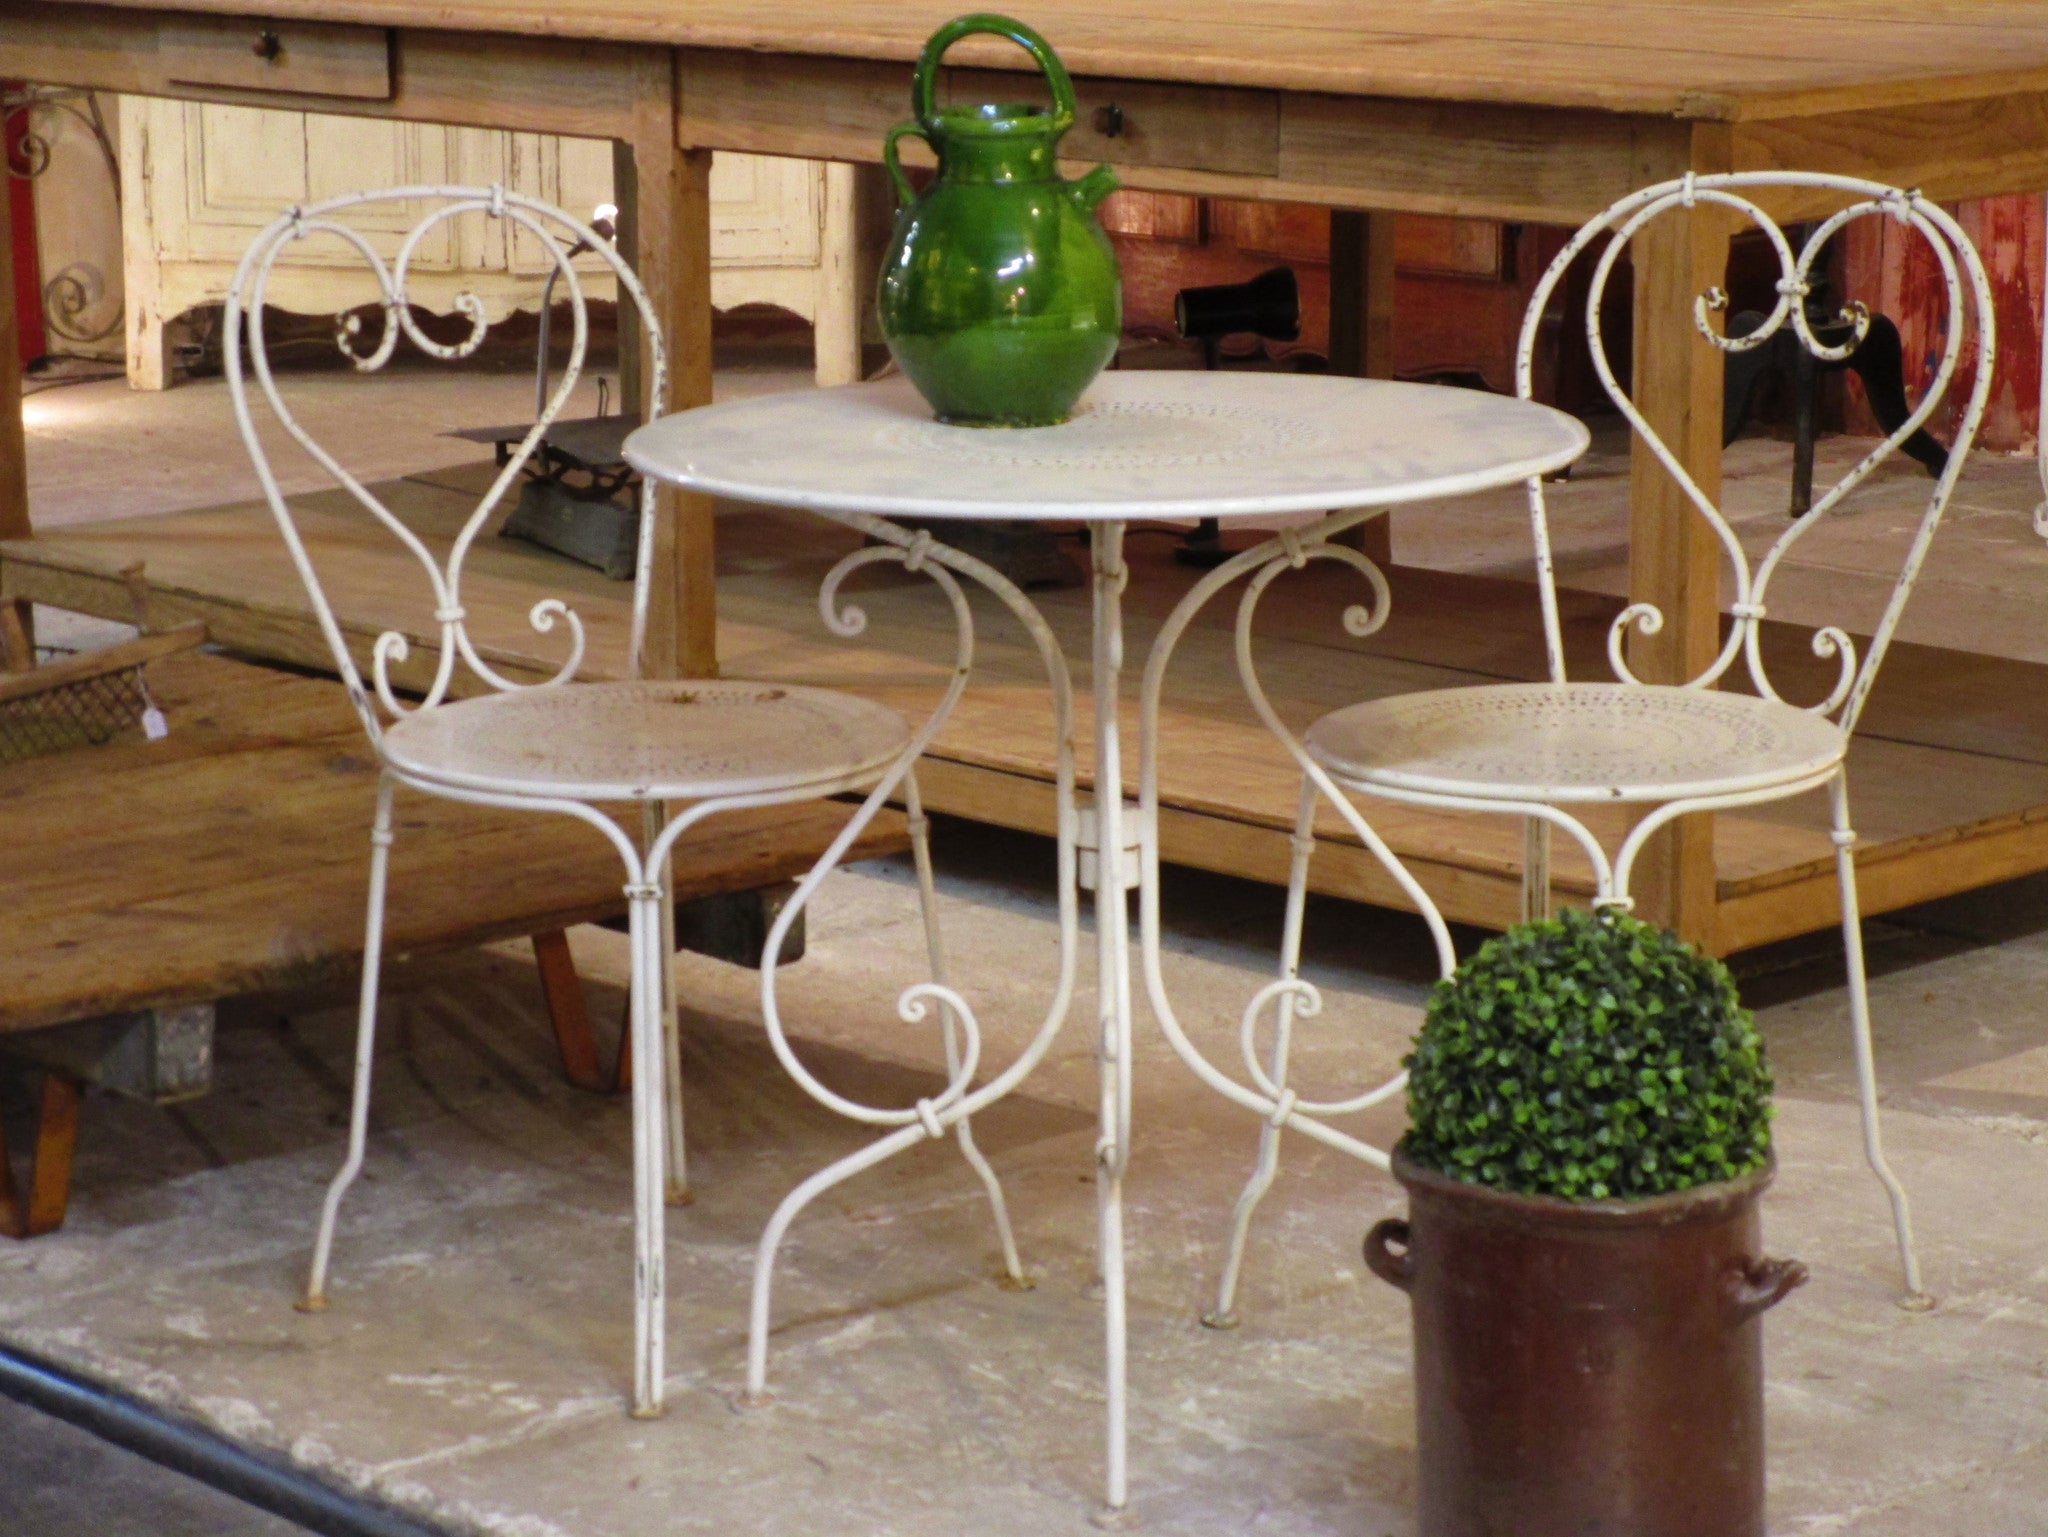 Vintage French outdoor table - white